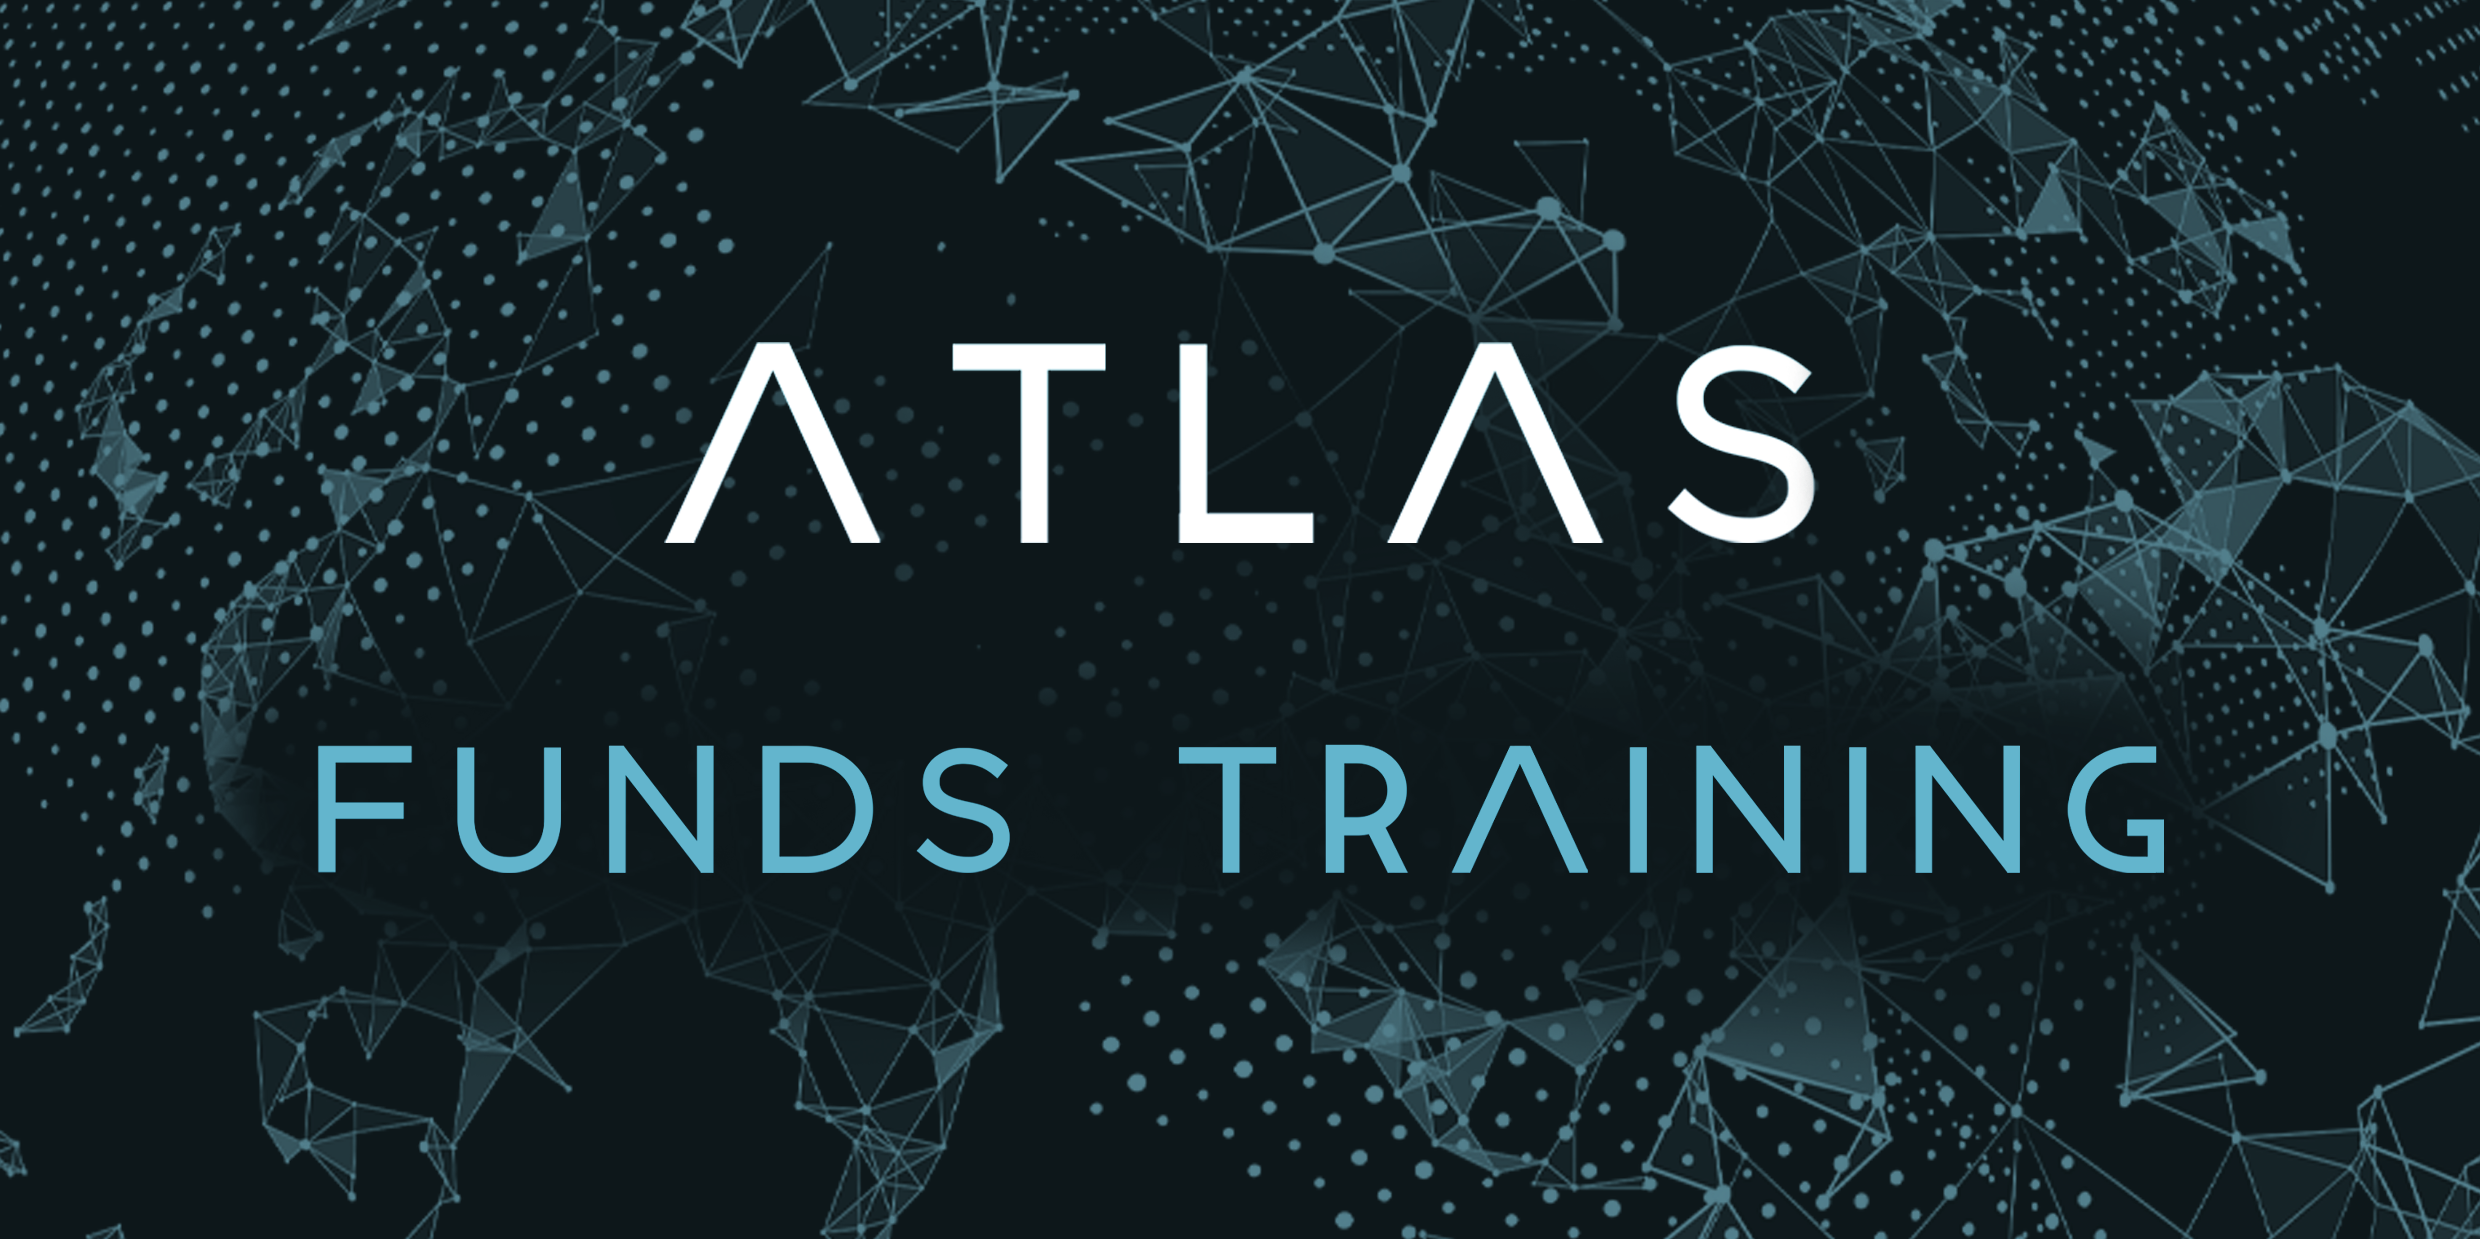 ATLAS Funds Training